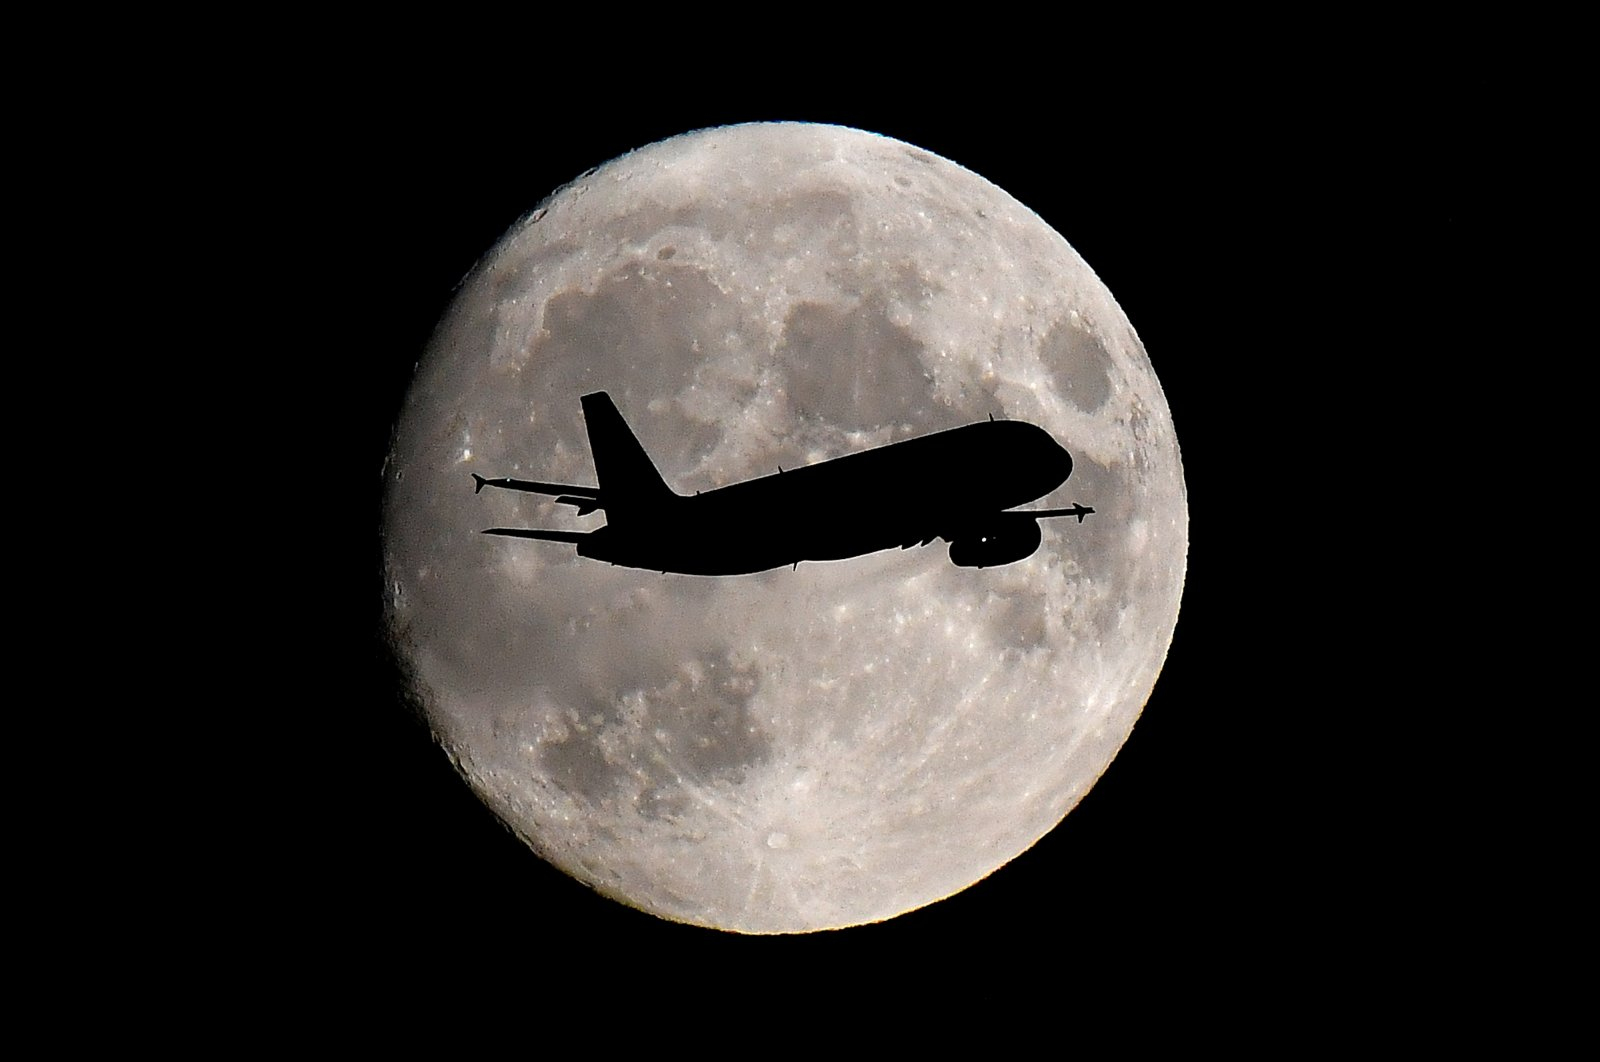 A passenger plane passes in front of the moon as it makes its final landing approach to Heathrow Airport in London, Britain, Sept. 12, 2019. (Reuters Photo)